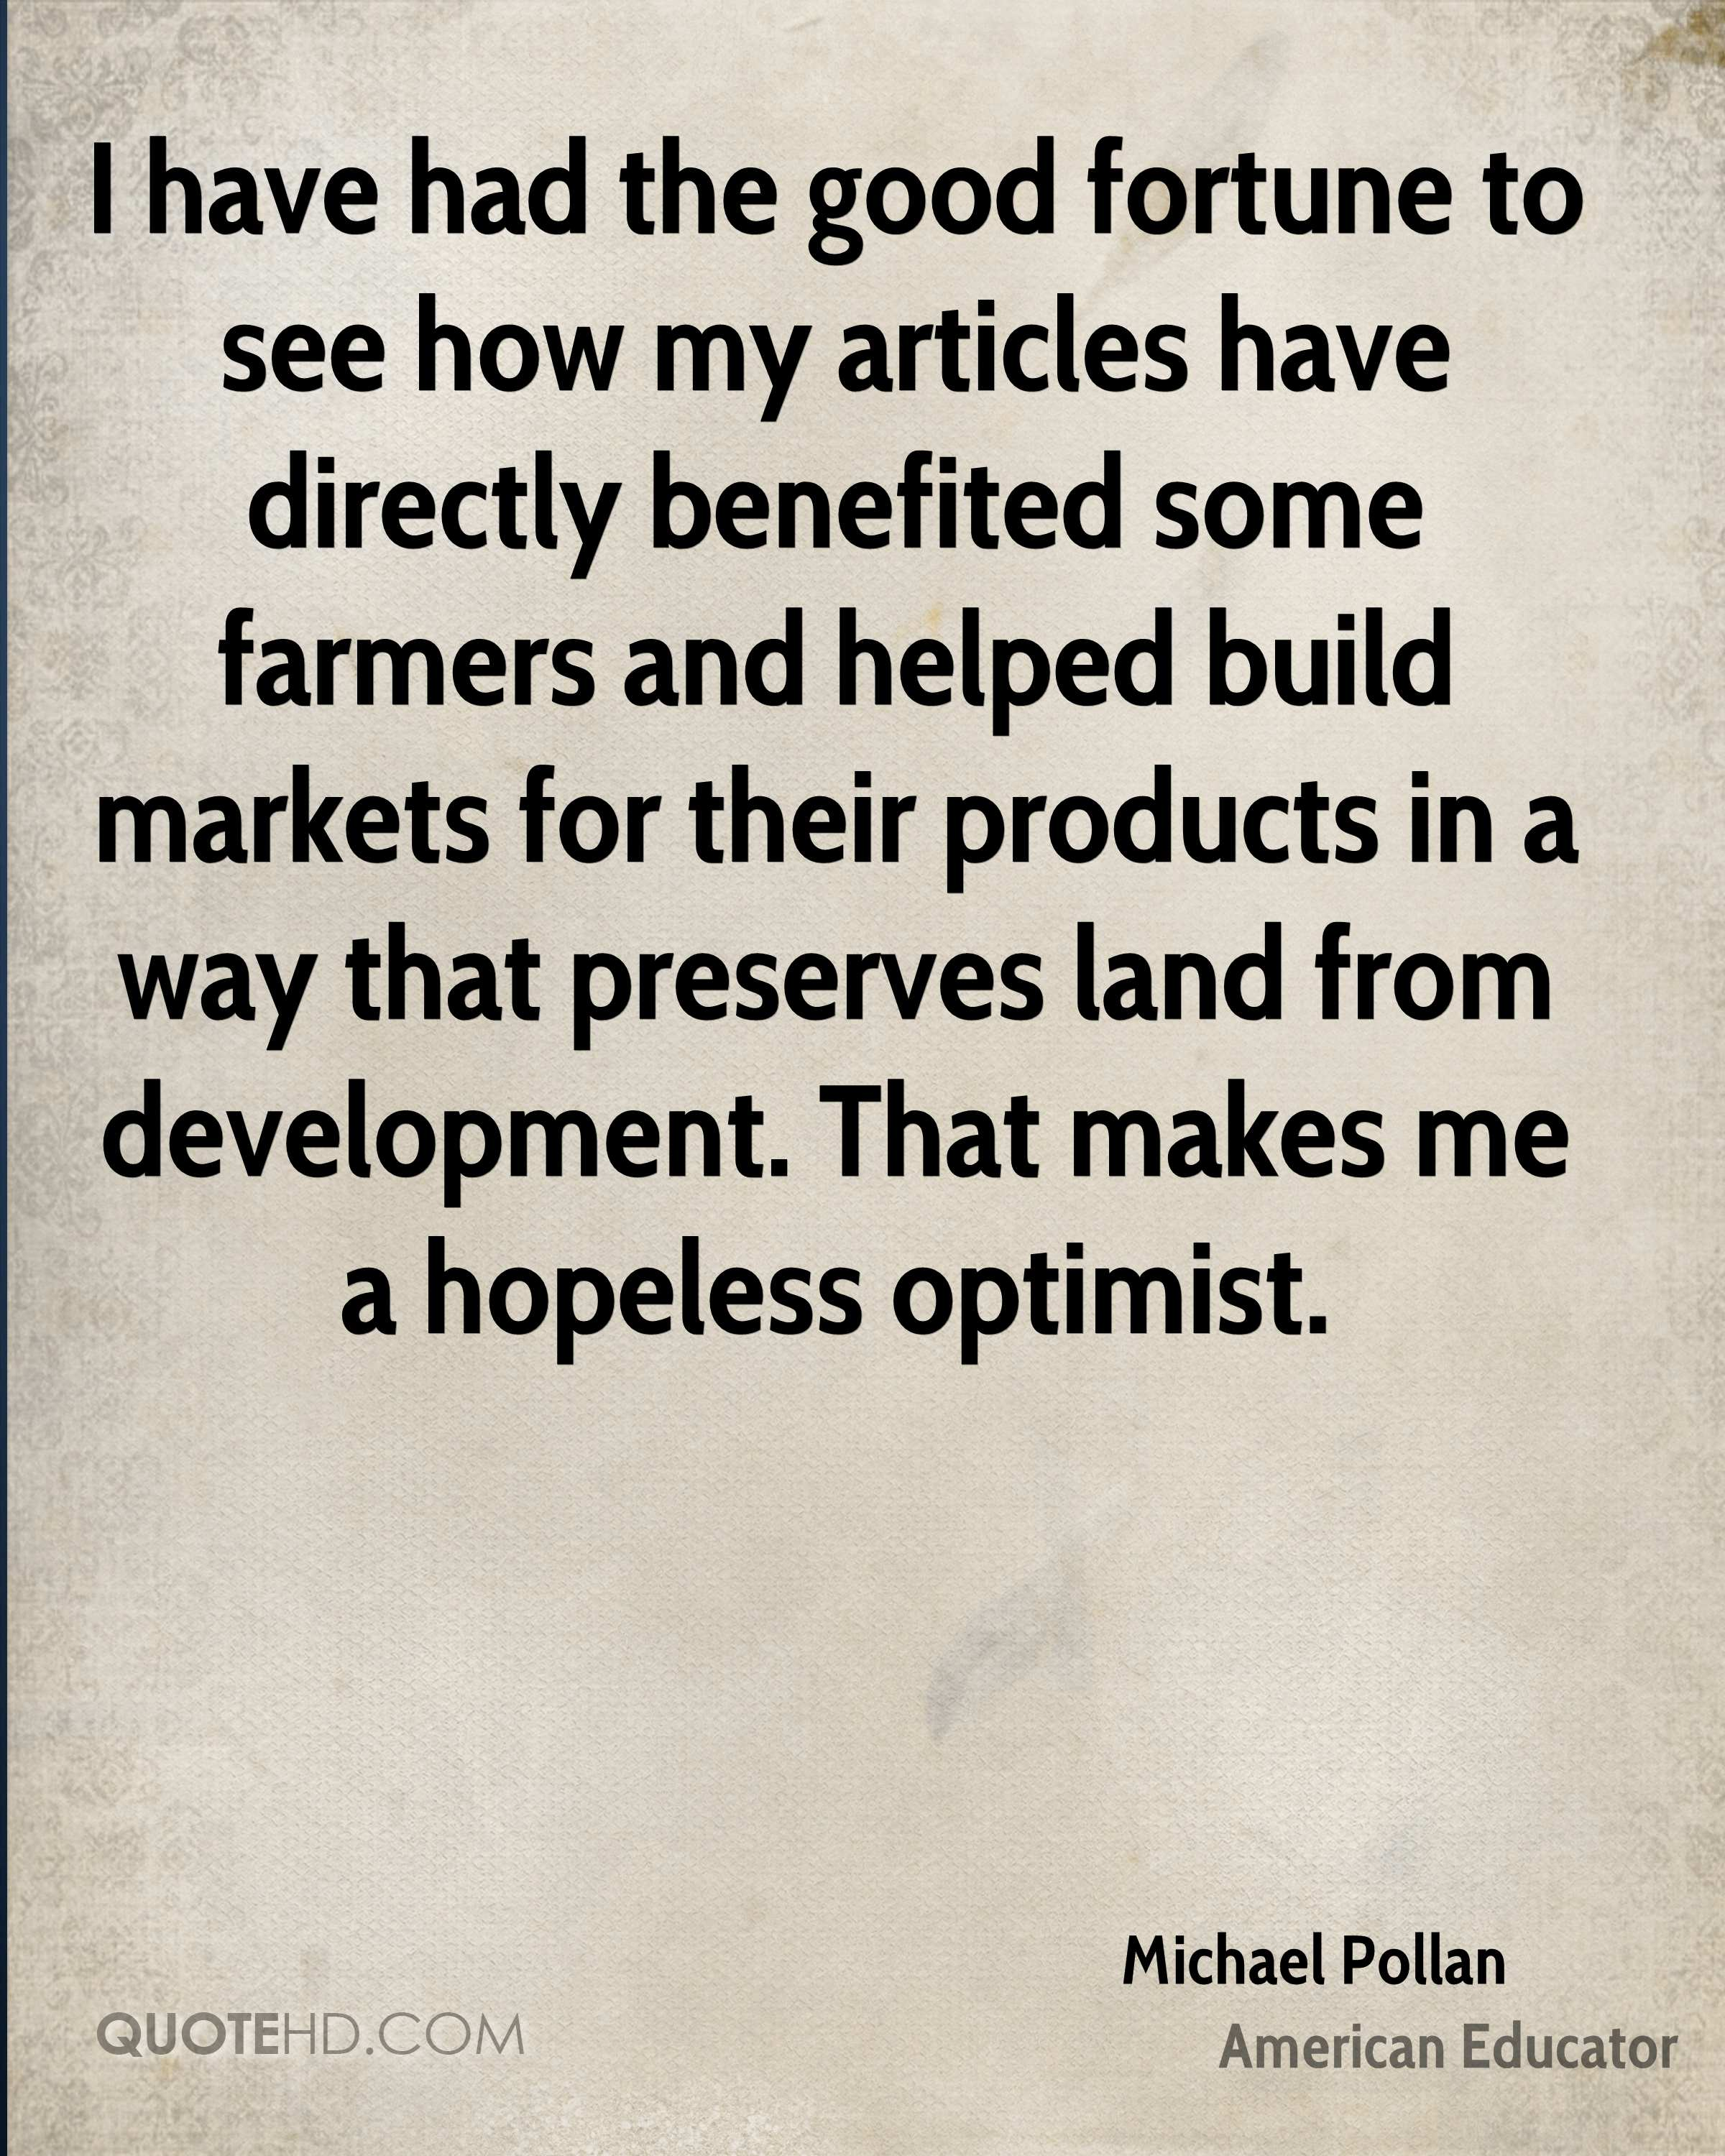 I have had the good fortune to see how my articles have directly benefited some farmers and helped build markets for their products in a way that preserves land from development. That makes me a hopeless optimist.